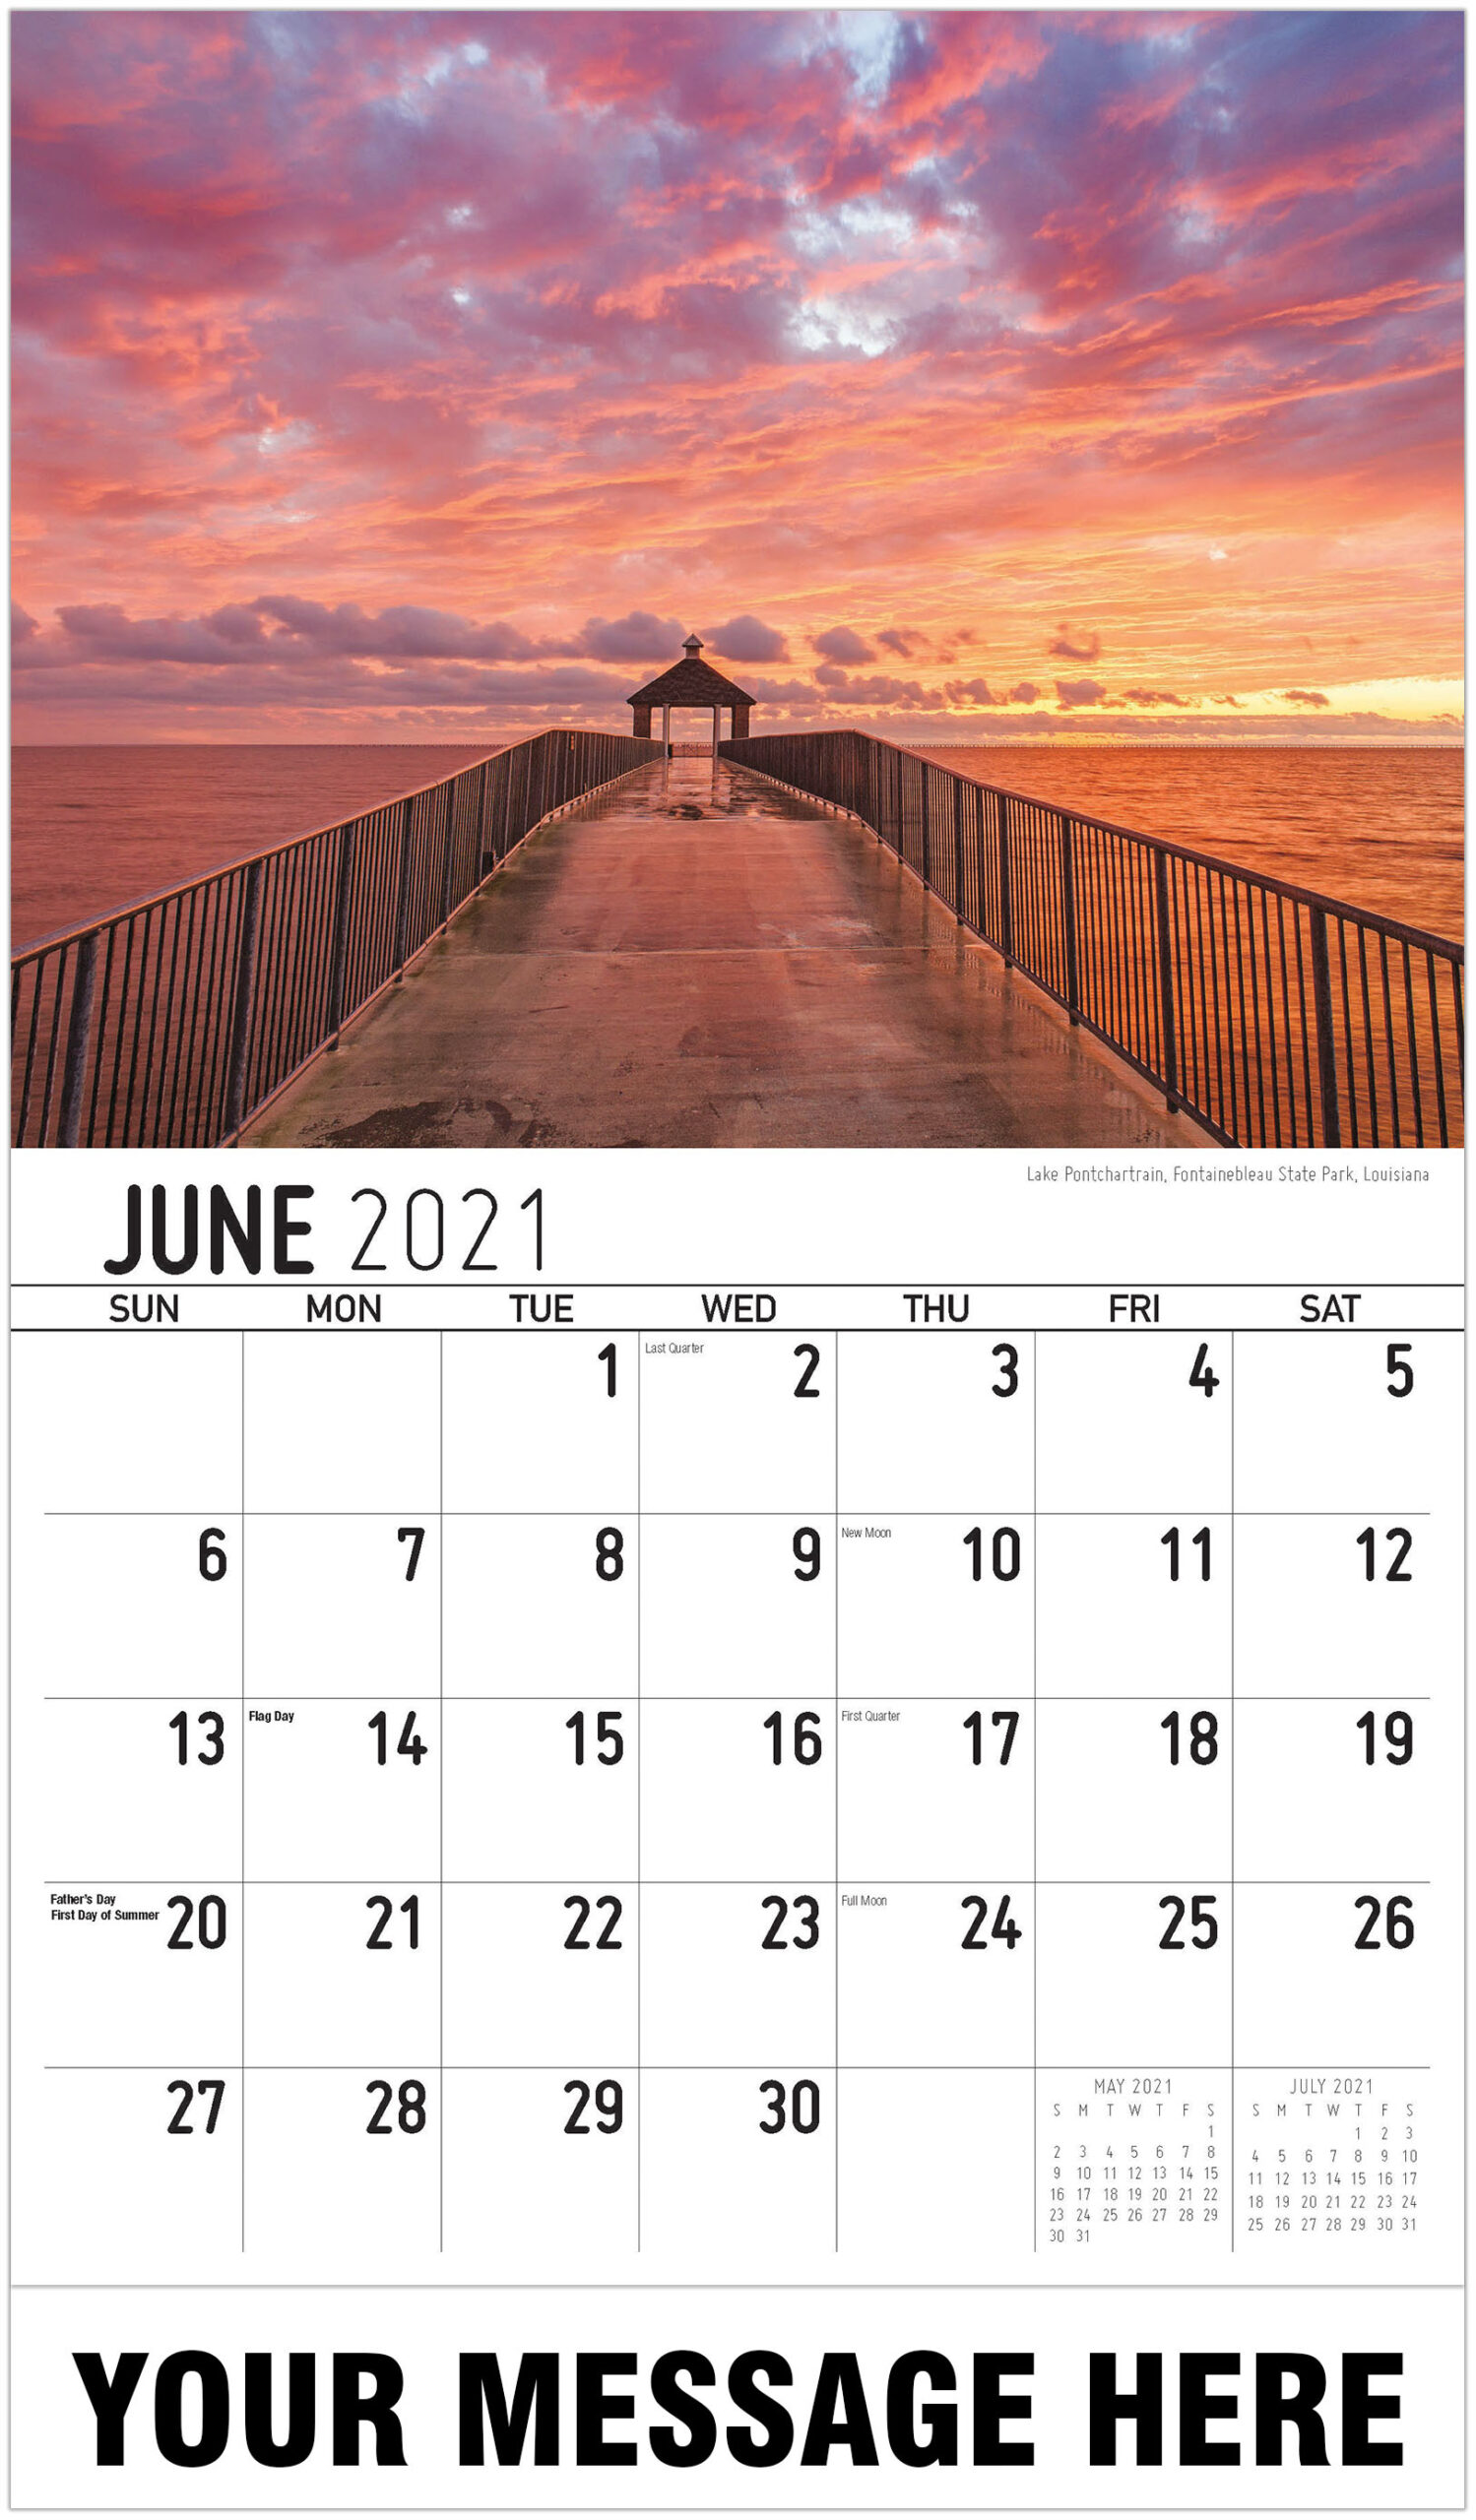 2021 Southeast Usa Scenic Calendar | Business Promotional